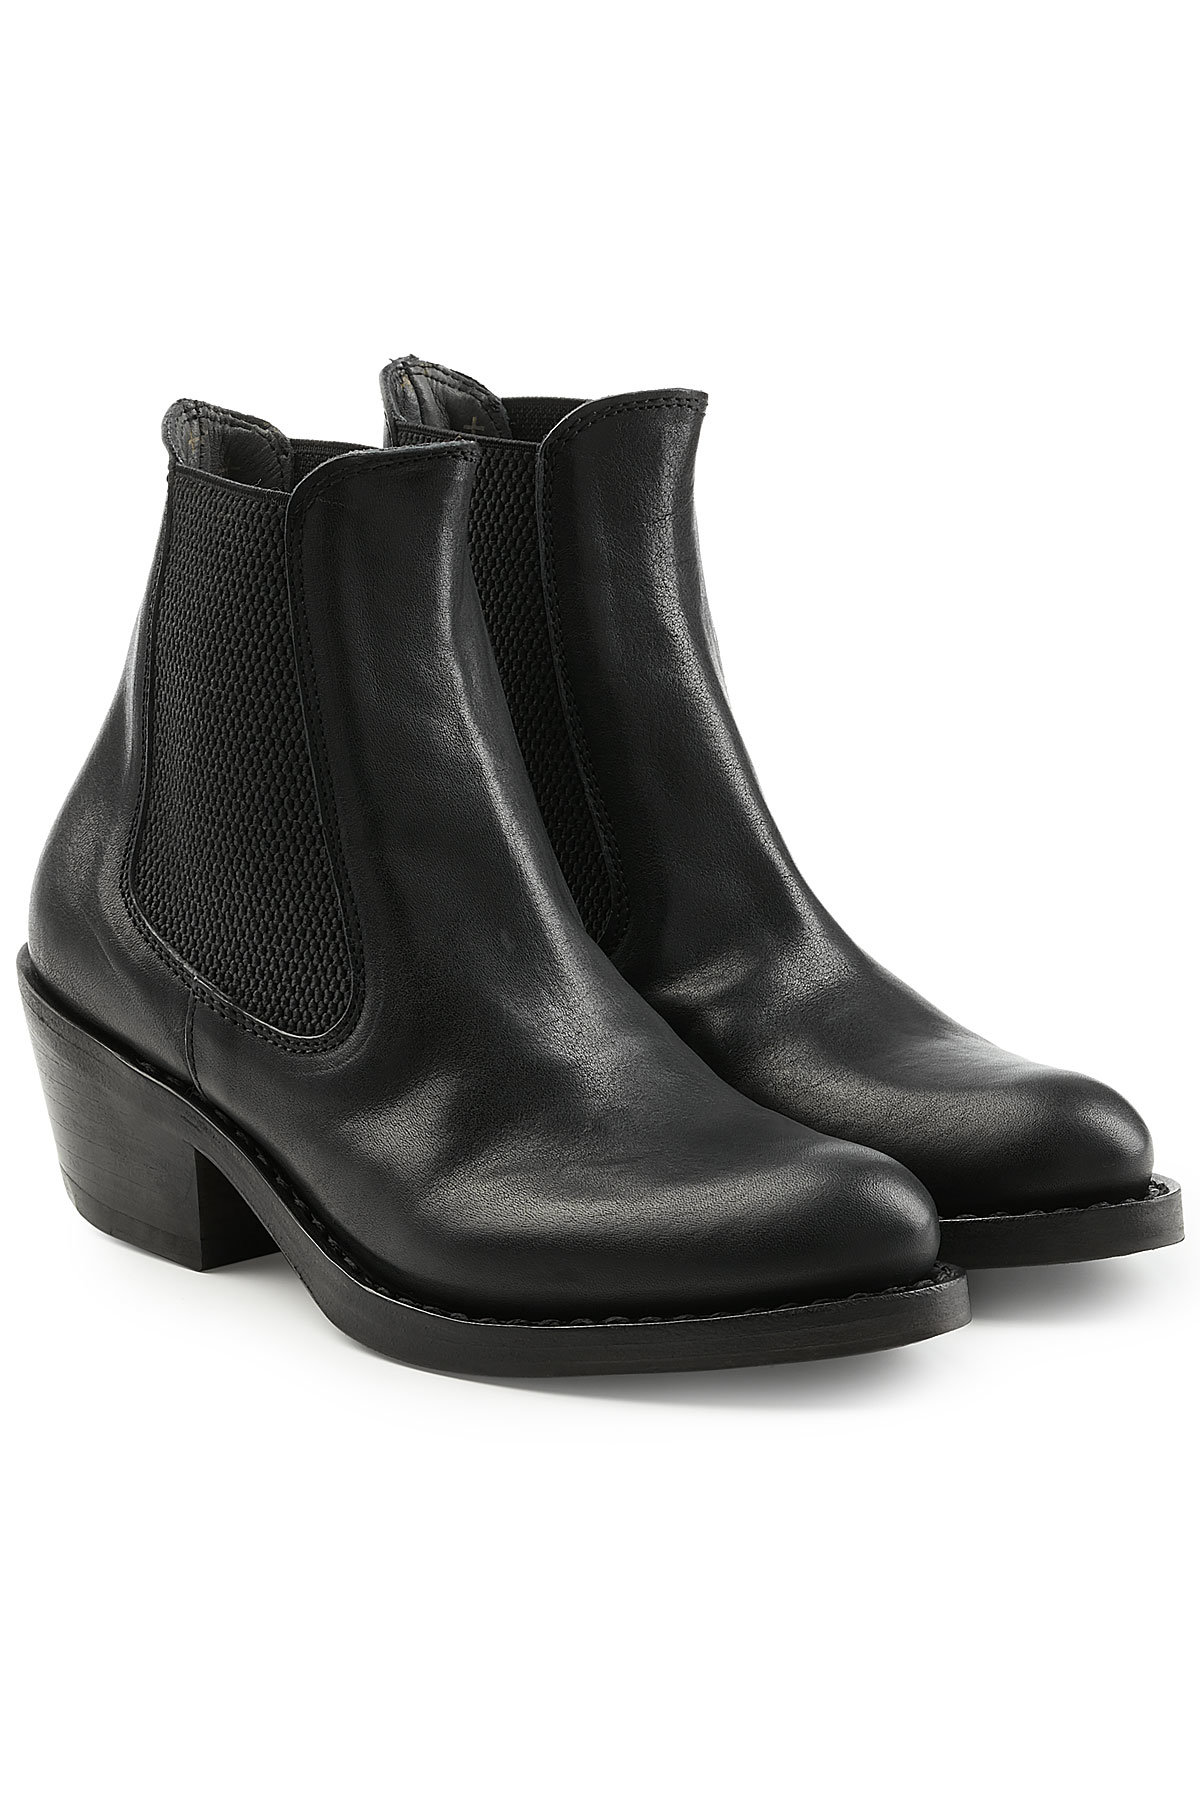 FIORENTINI + BAKER Roxy Leather Ankle Boots Gr. IT 37 cbc8k